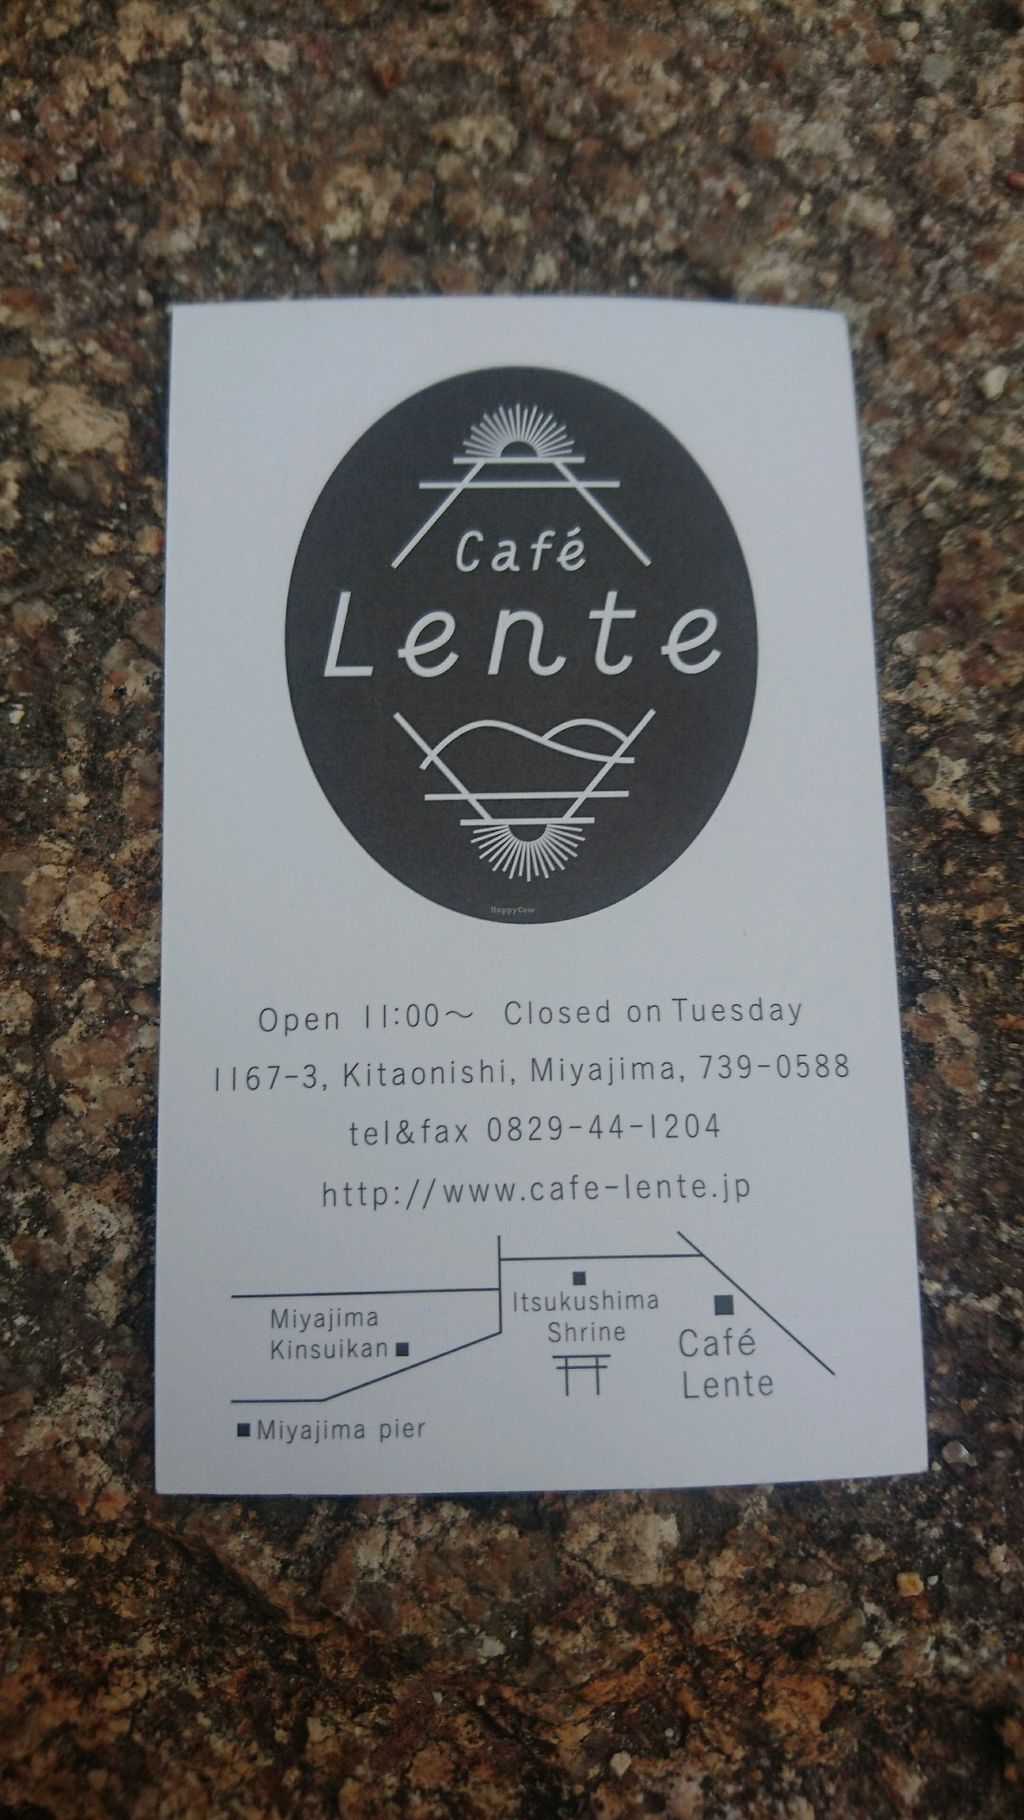 "Photo of Cafe Lente  by <a href=""/members/profile/EmmaIn86"">EmmaIn86</a> <br/>Cafe Lente business card <br/> November 26, 2017  - <a href='/contact/abuse/image/92986/329282'>Report</a>"